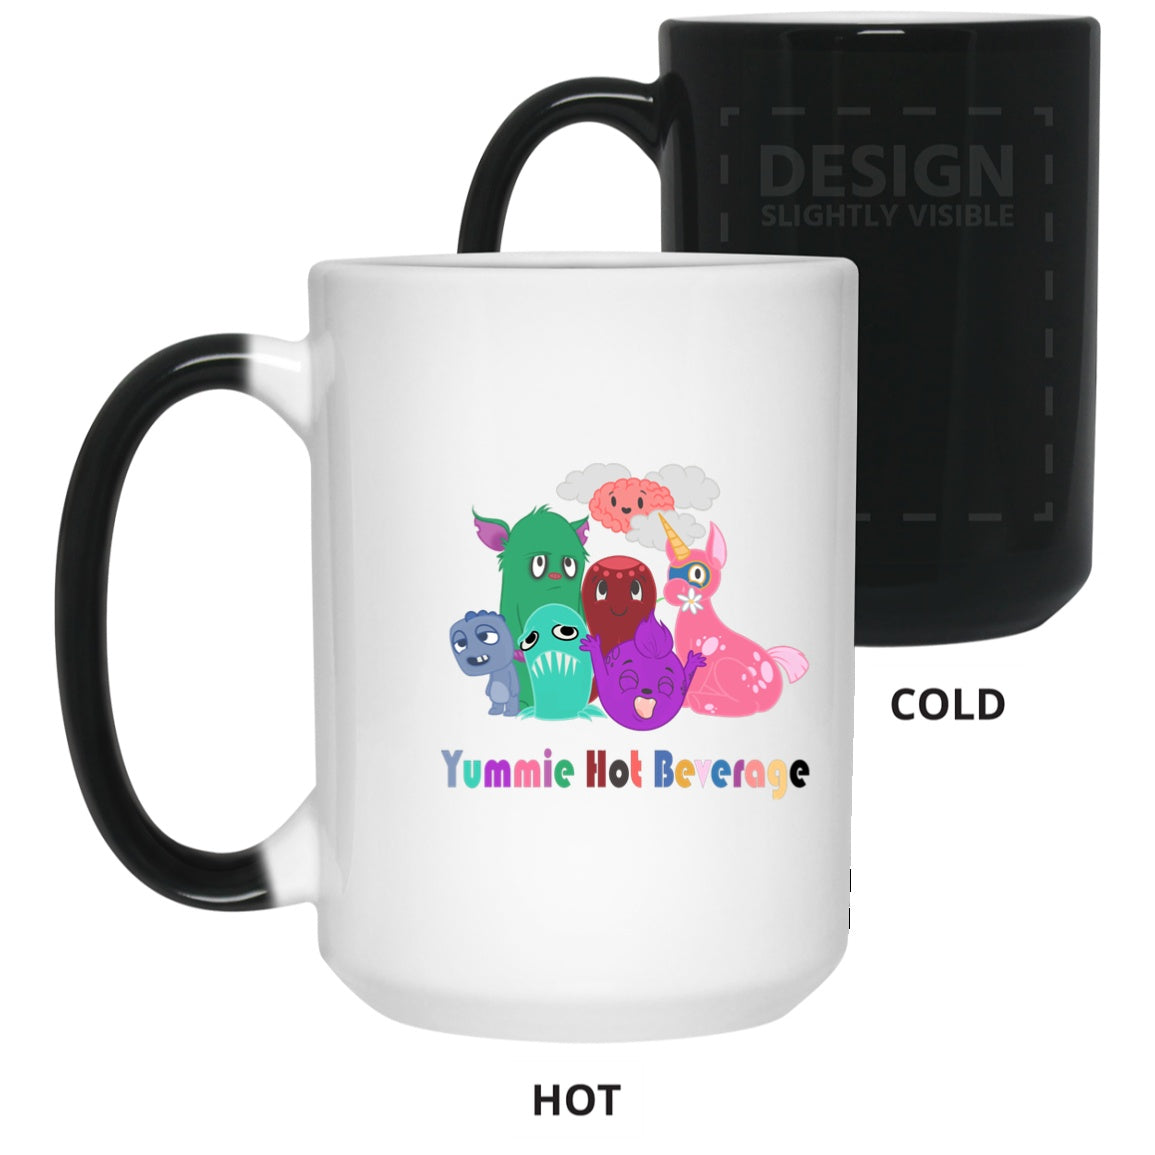 Yummie Hot Beverage Chargimals 15 oz. Color Changing Mug